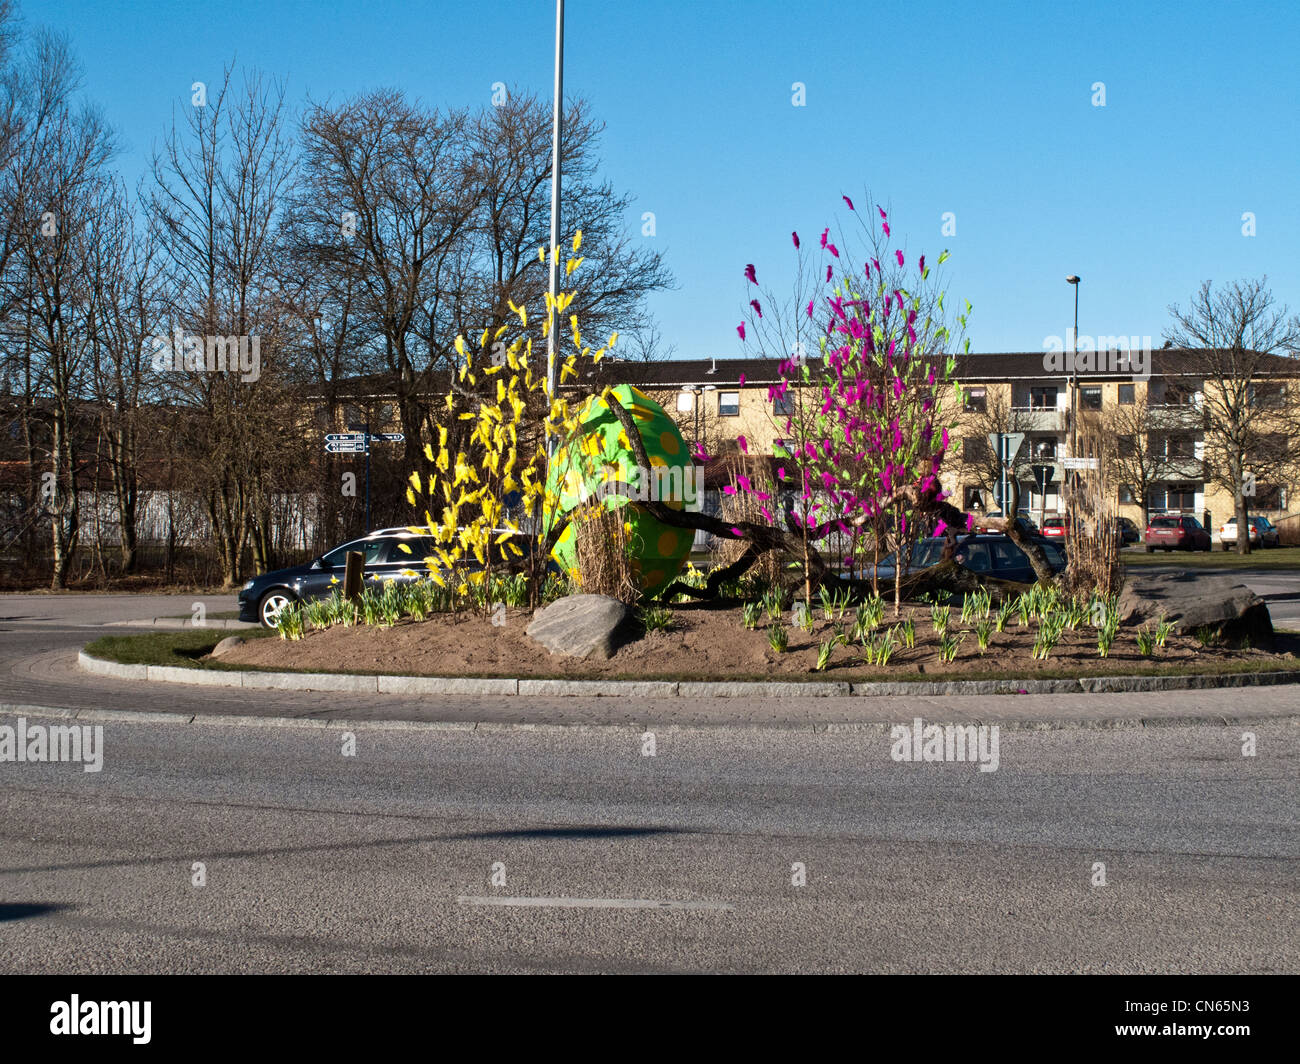 Easter feathers decorations at a roundabout in Sweden - Stock Image